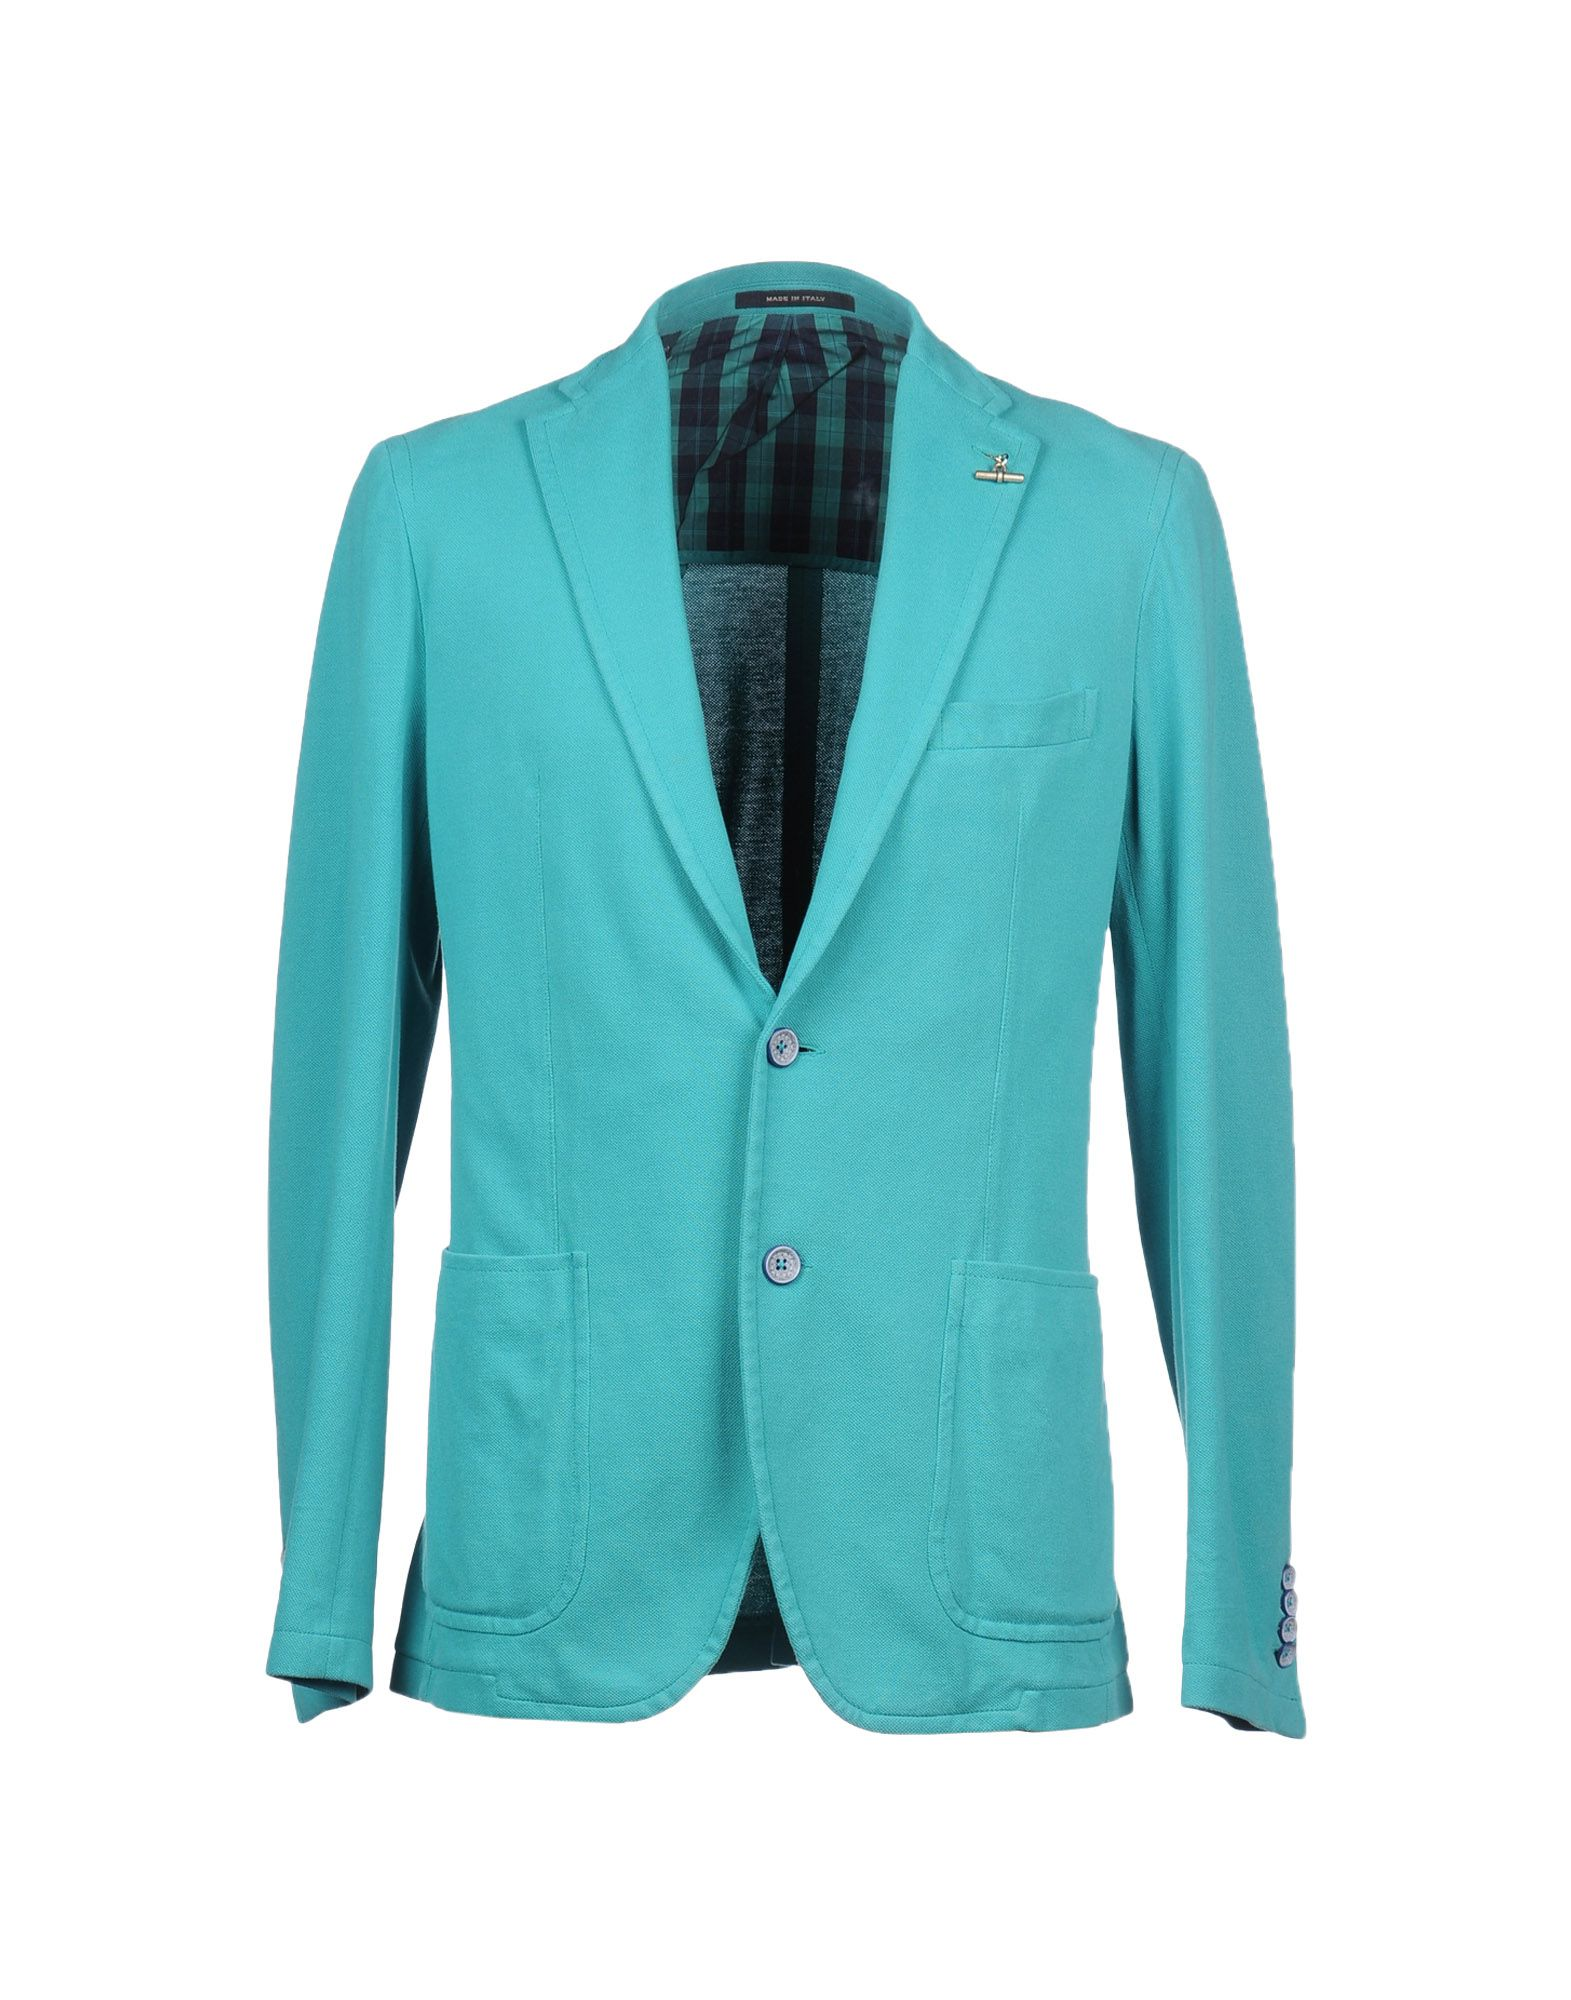 Tagliatore Blazer In Blue For Men Turquoise Lyst